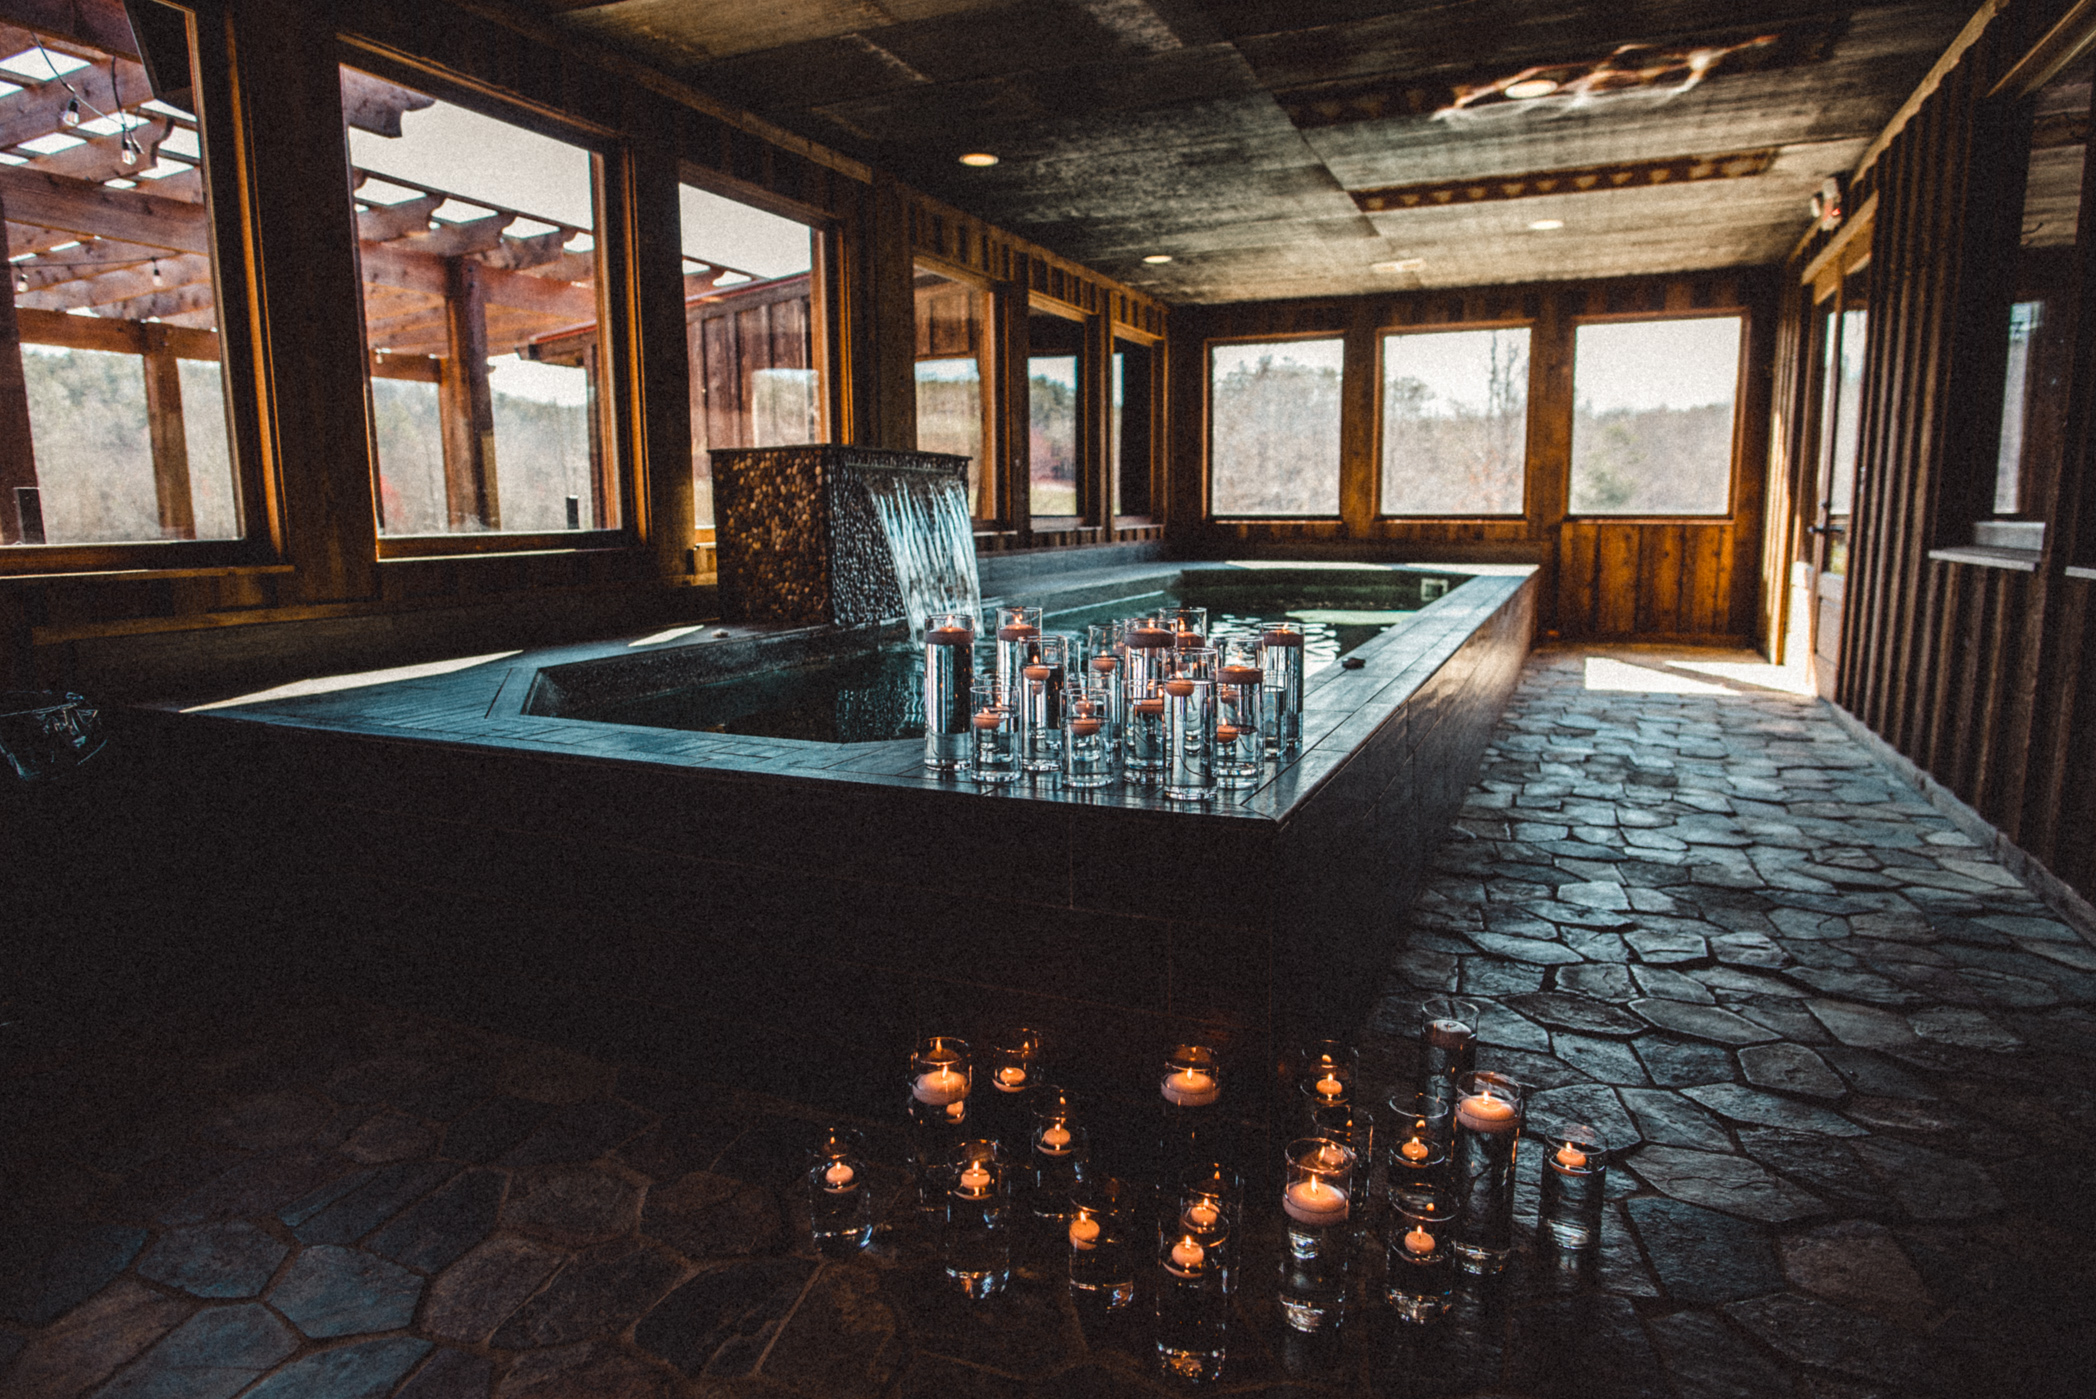 wedding pool and candles